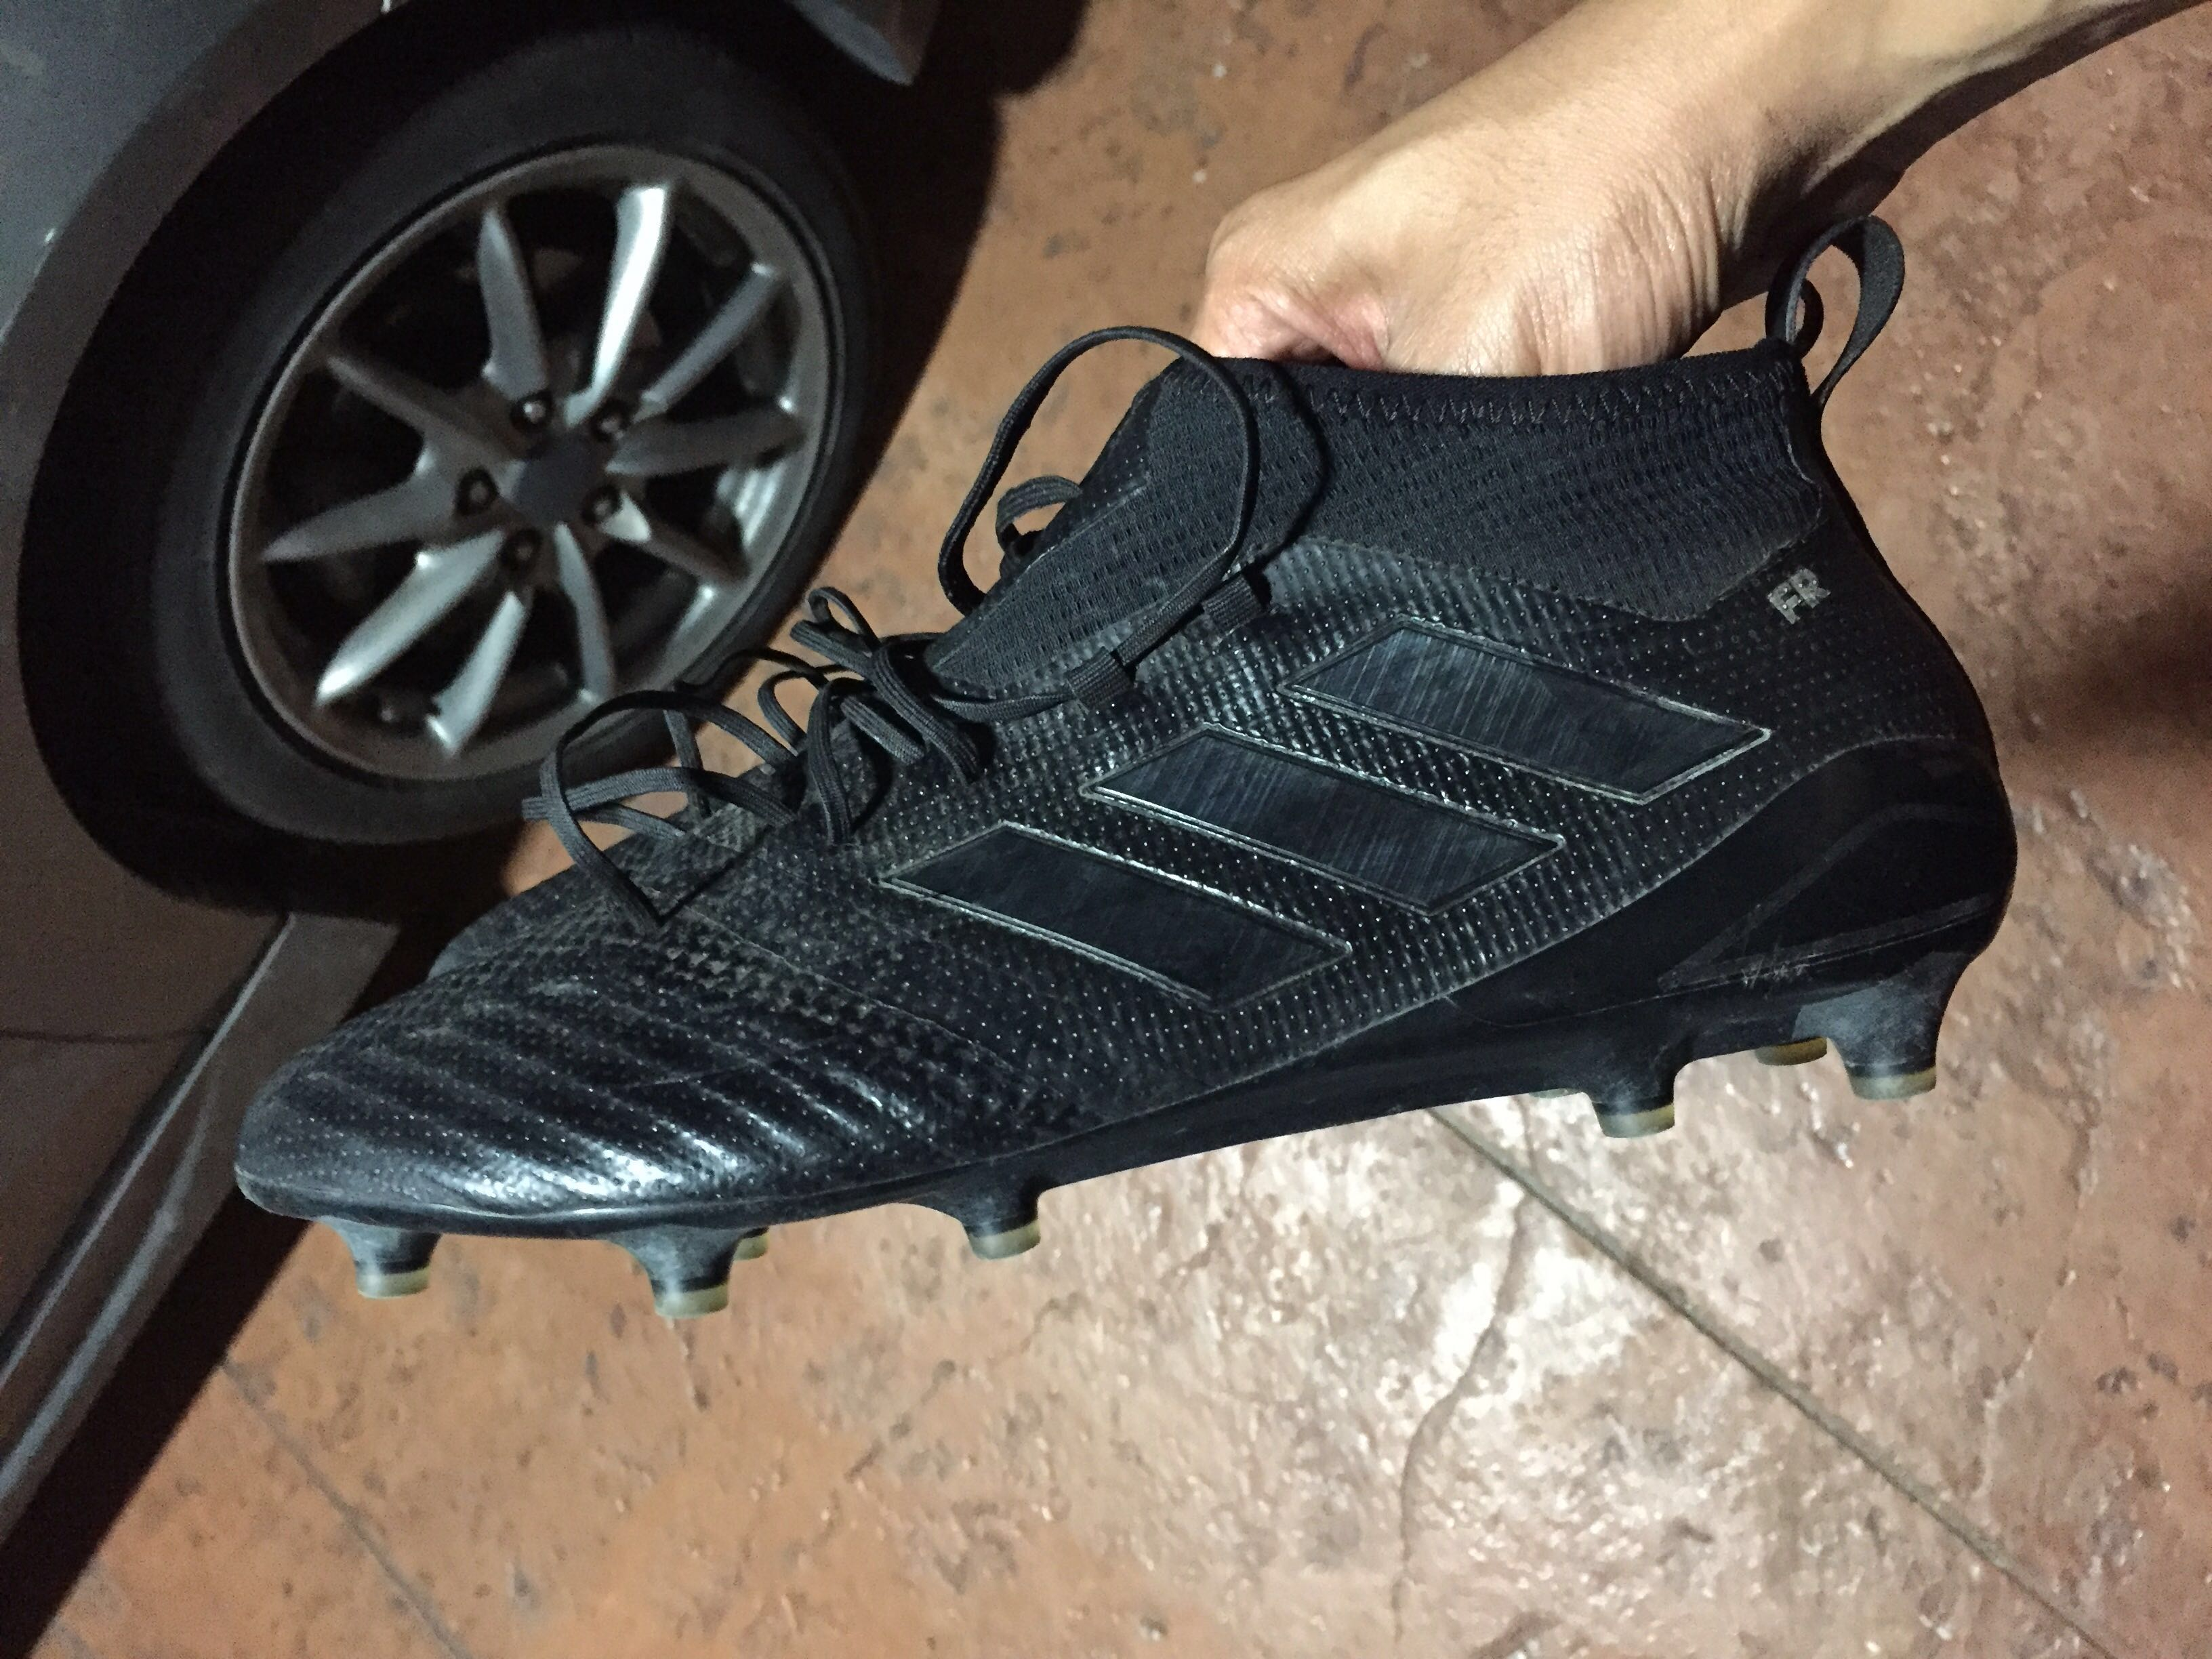 new products 58a75 938c1 Adidas Ace 17.1 Blackout, Men s Fashion, Footwear on Carousell